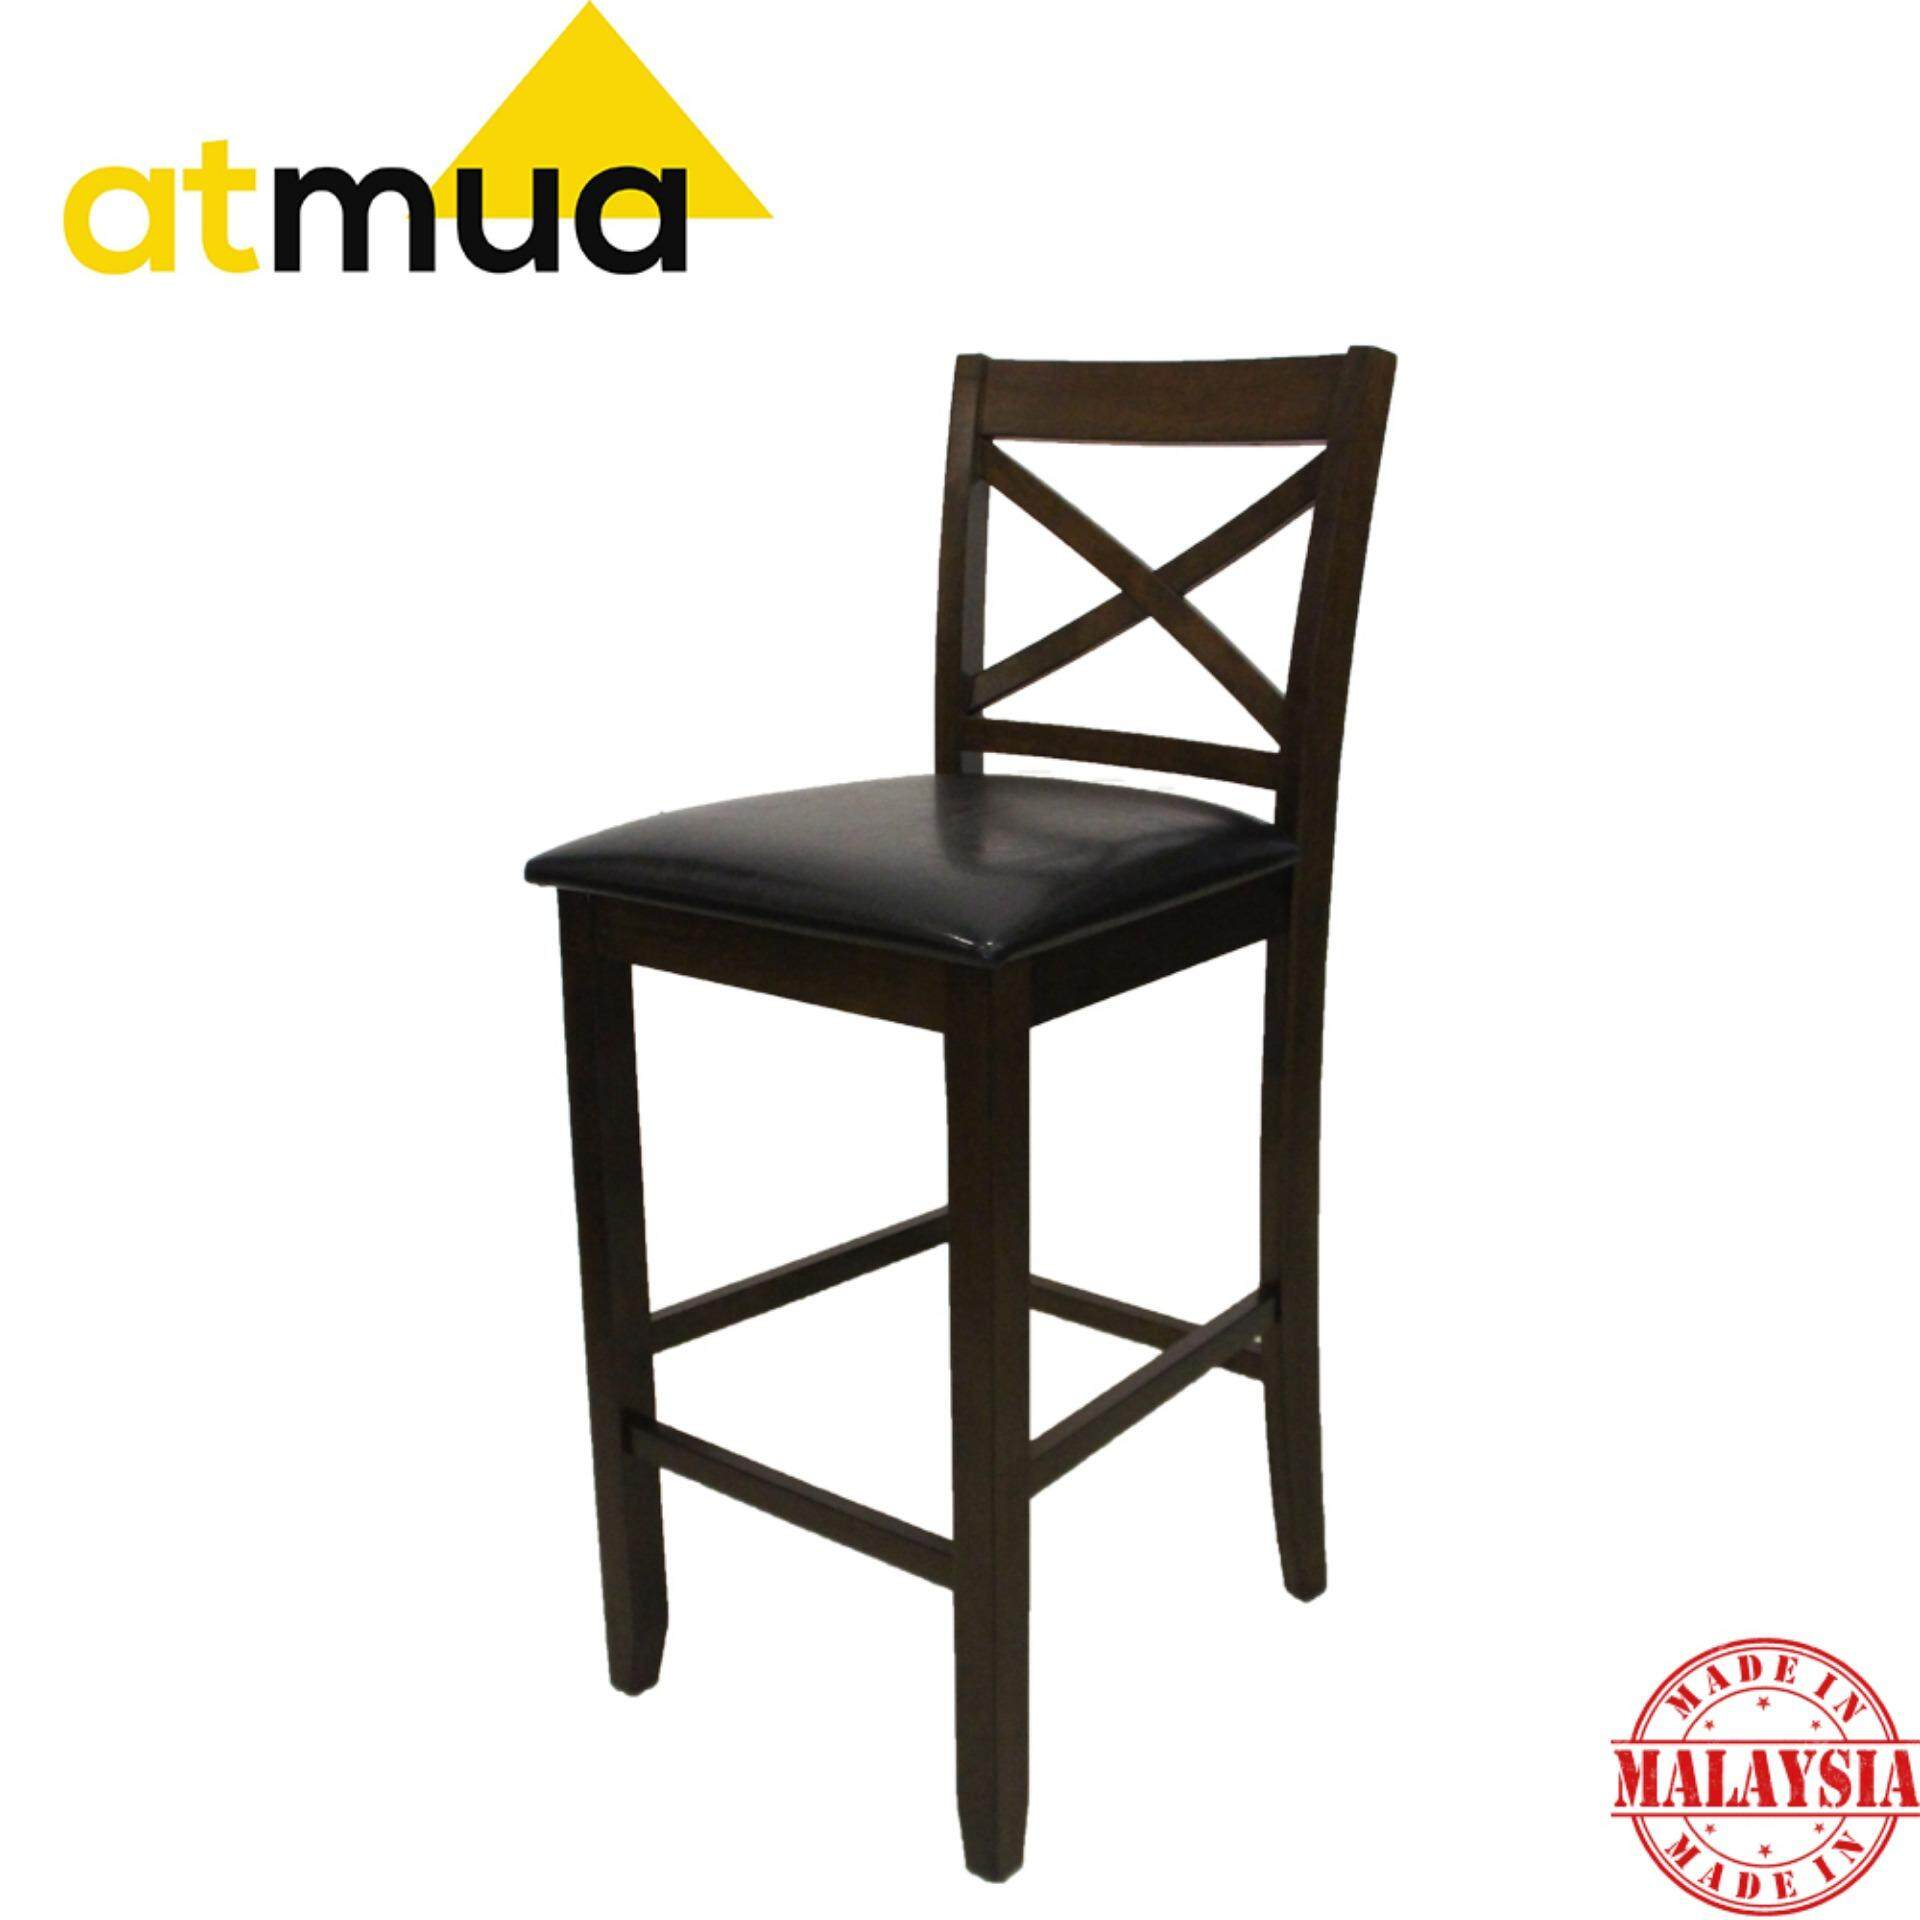 Atmua Standard  Bar Chair - Height 29 inch [Full Solid Wood]